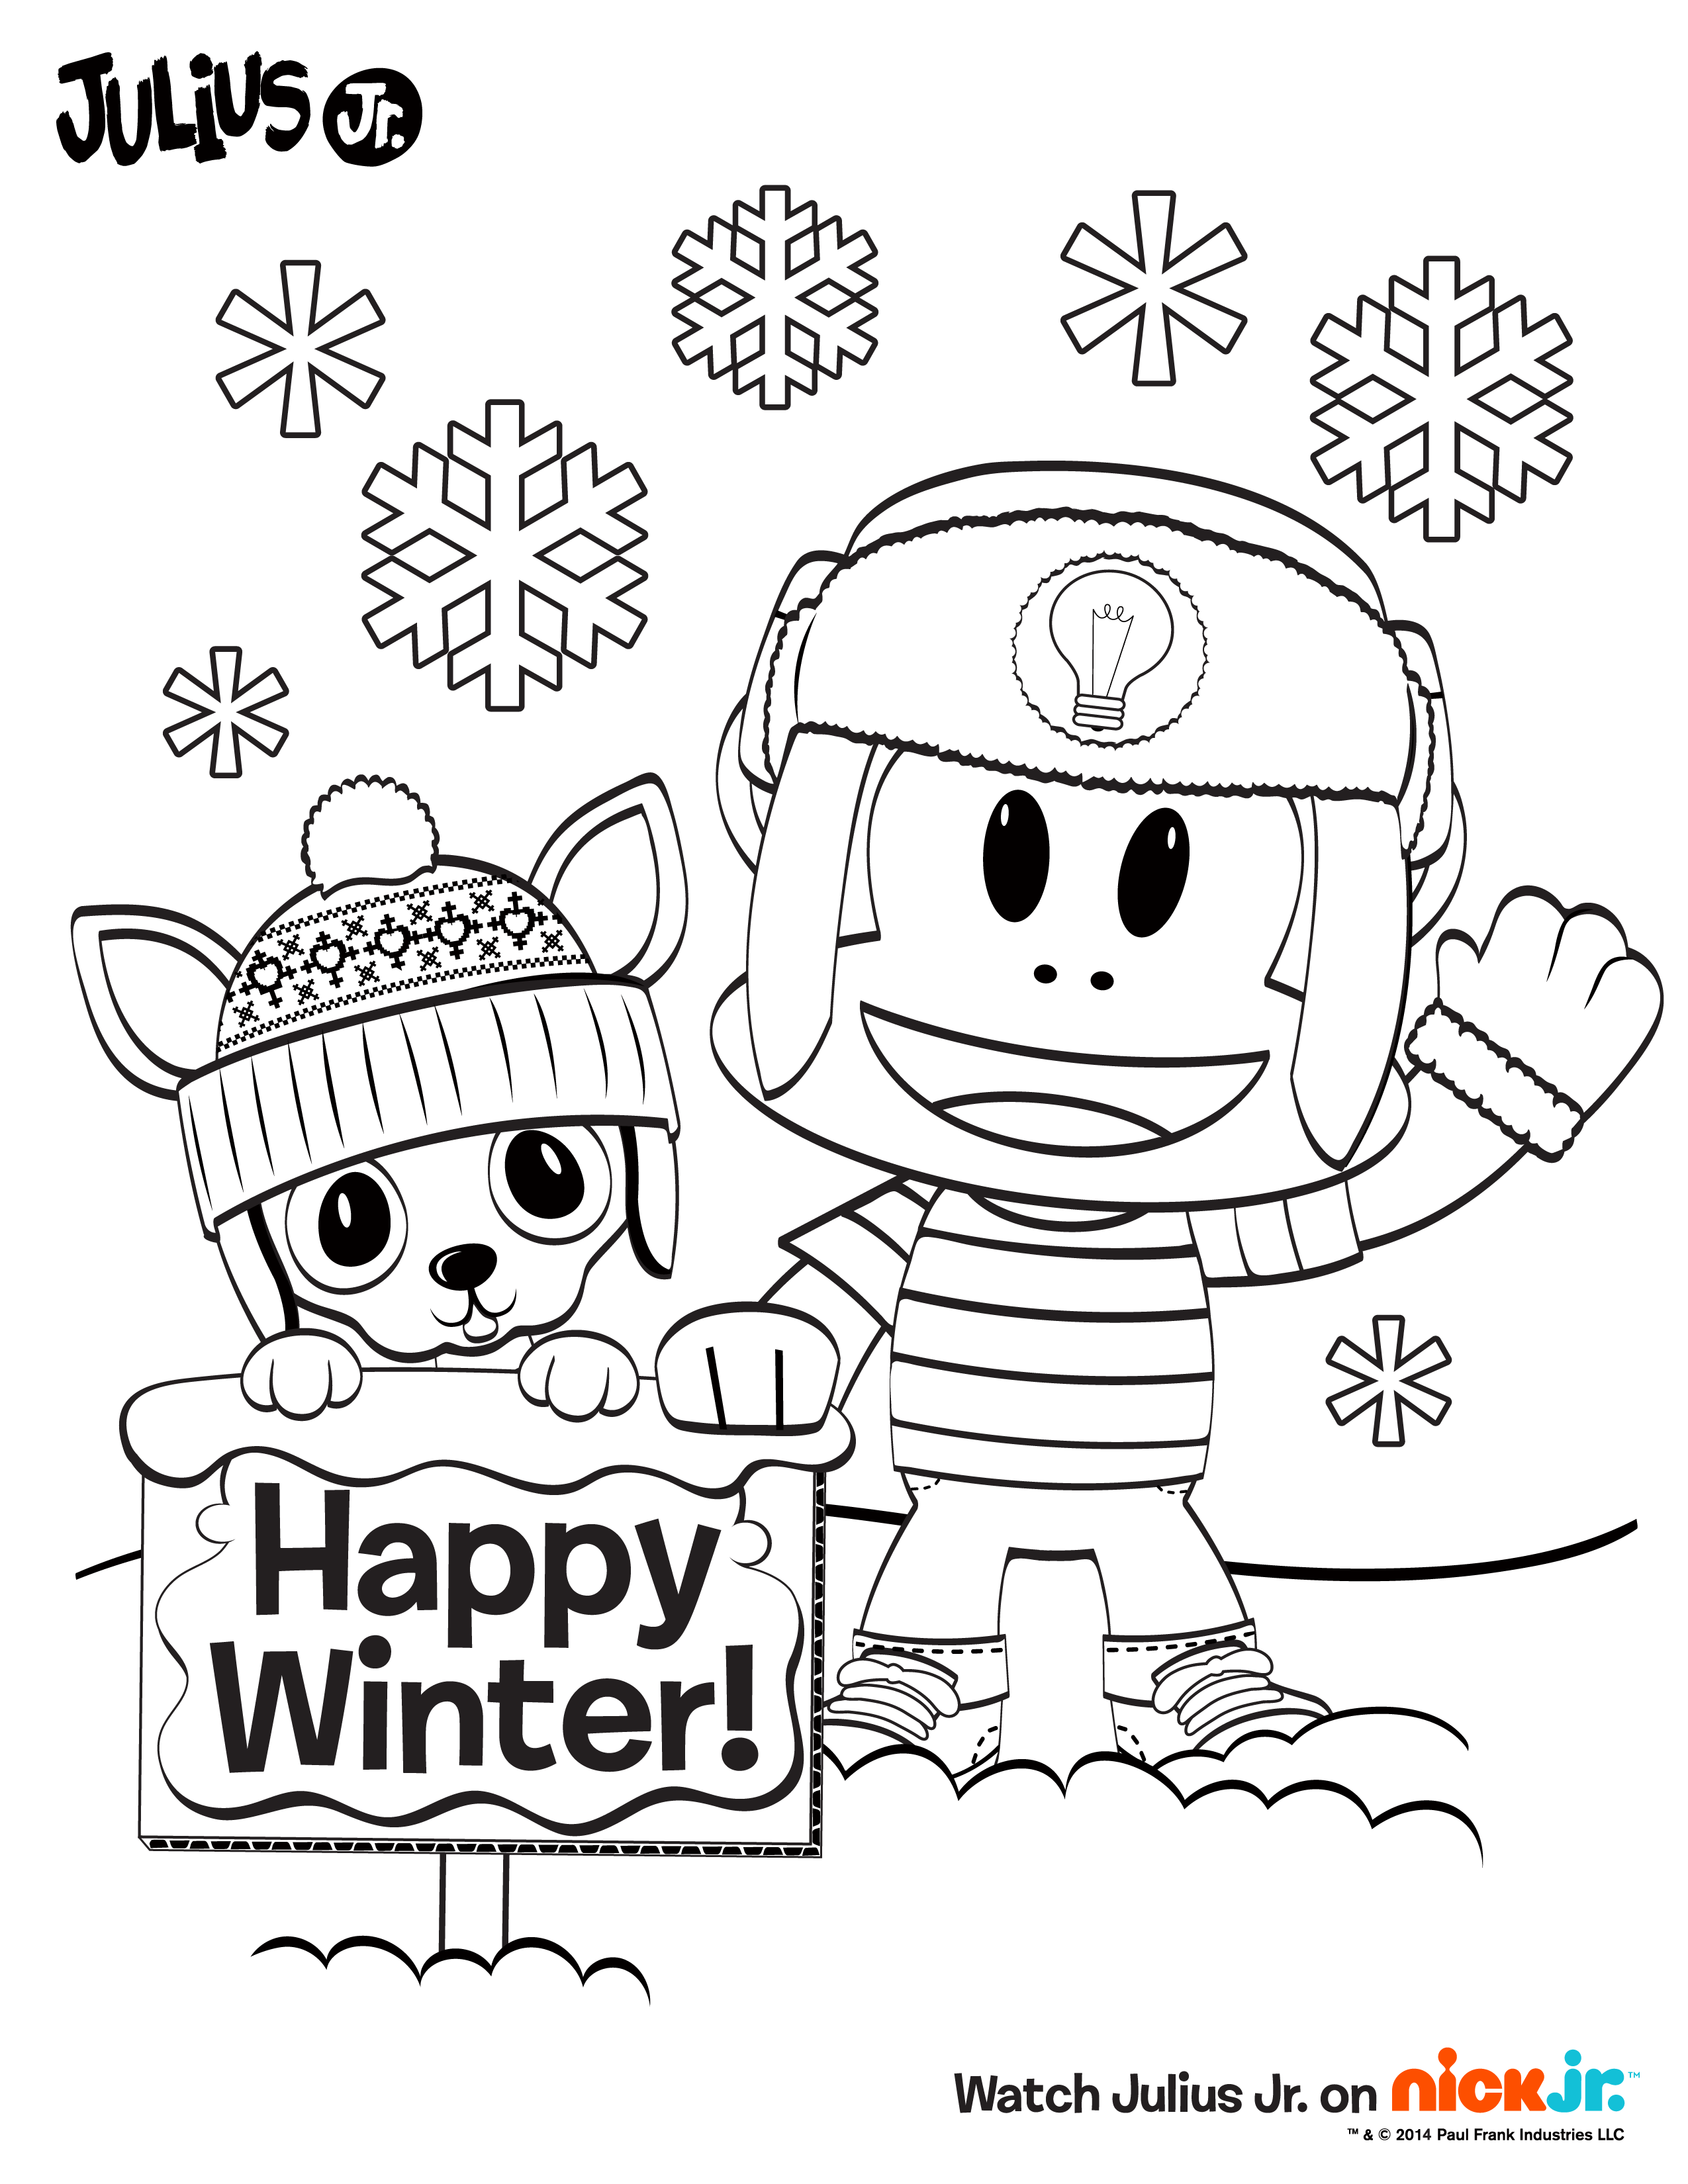 Happy Winter Color In This Fun Sheet To Celebrate The Season Juliusjr Kids Toys Action Figures Toys Online